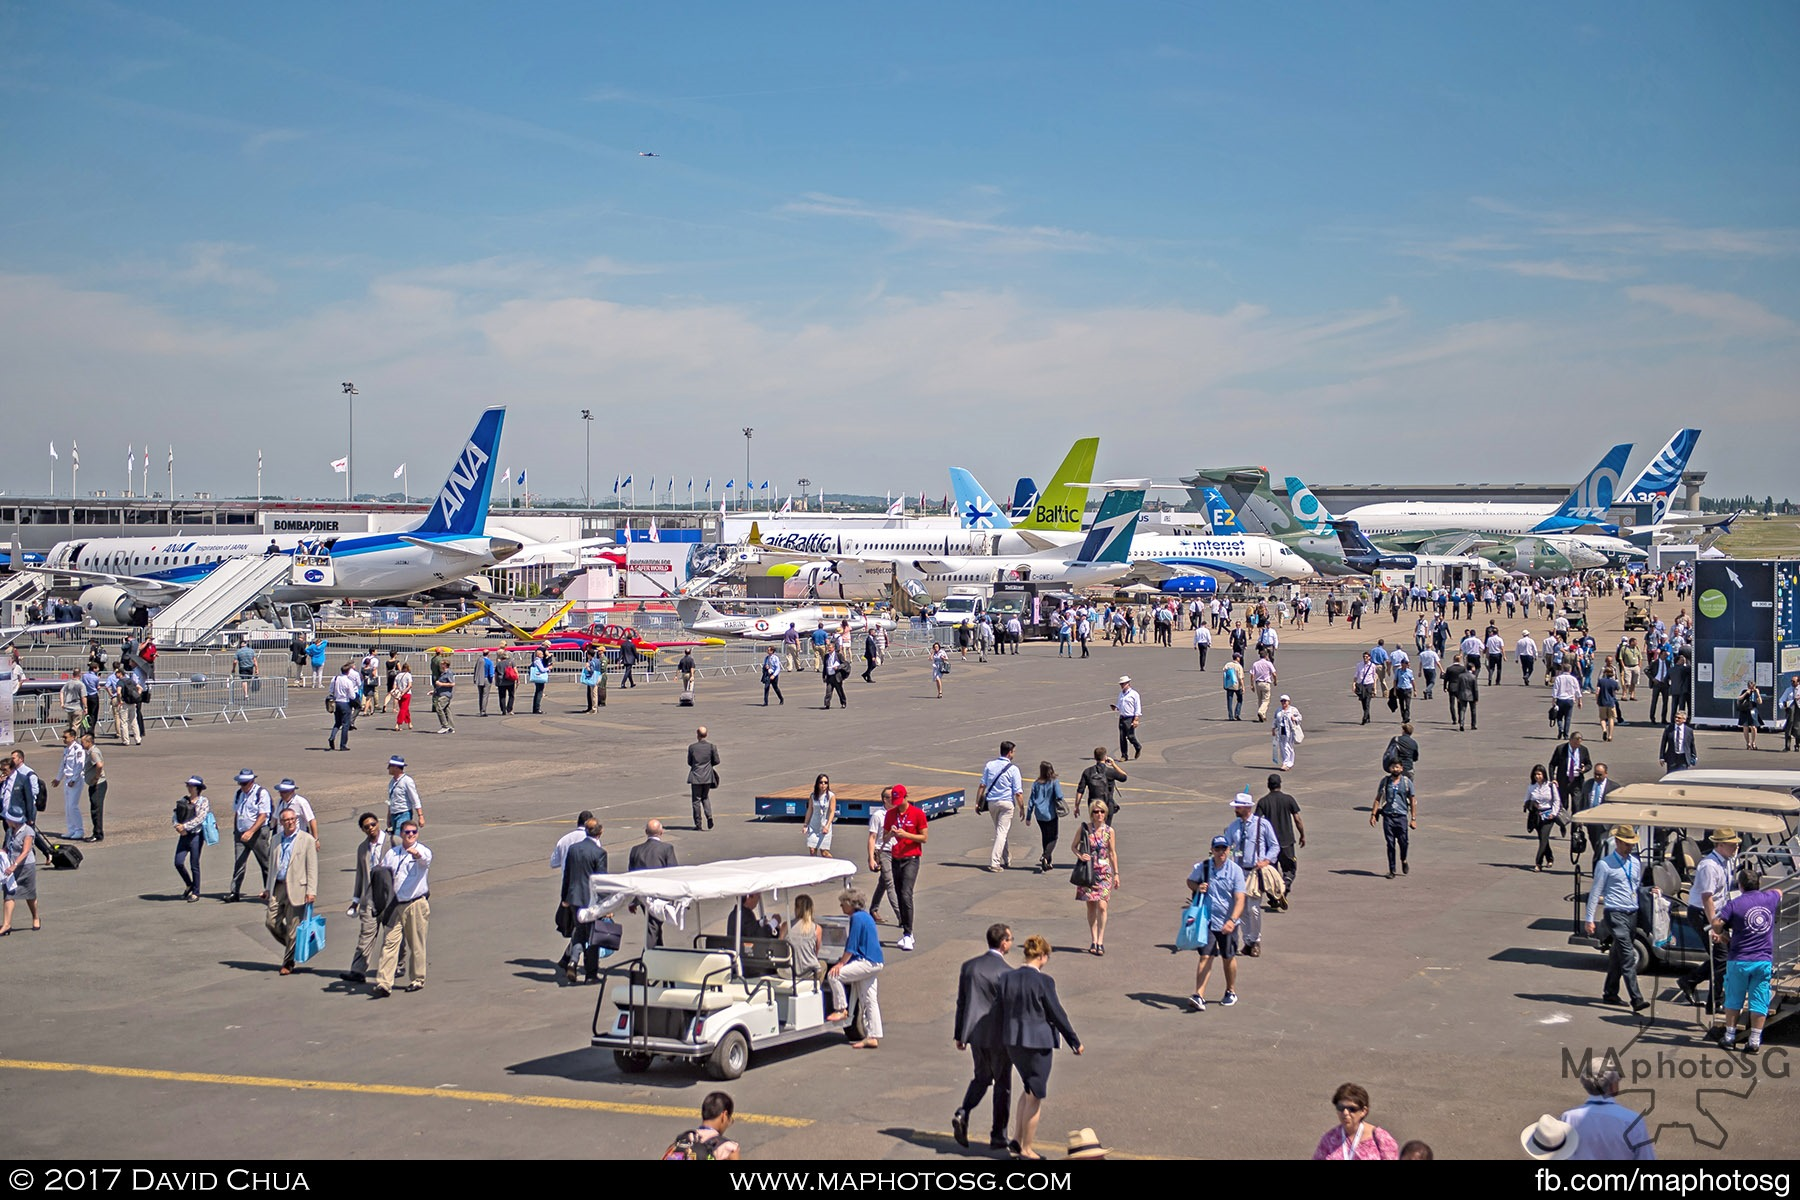 40. Part of the Static Display Area as viewed from the top deck of the Media Centre. Some notable tails are the MRJ, CS300, Q400, Superjet 100, E195-E2, B787-10, B737 Max C295 and A380plus.